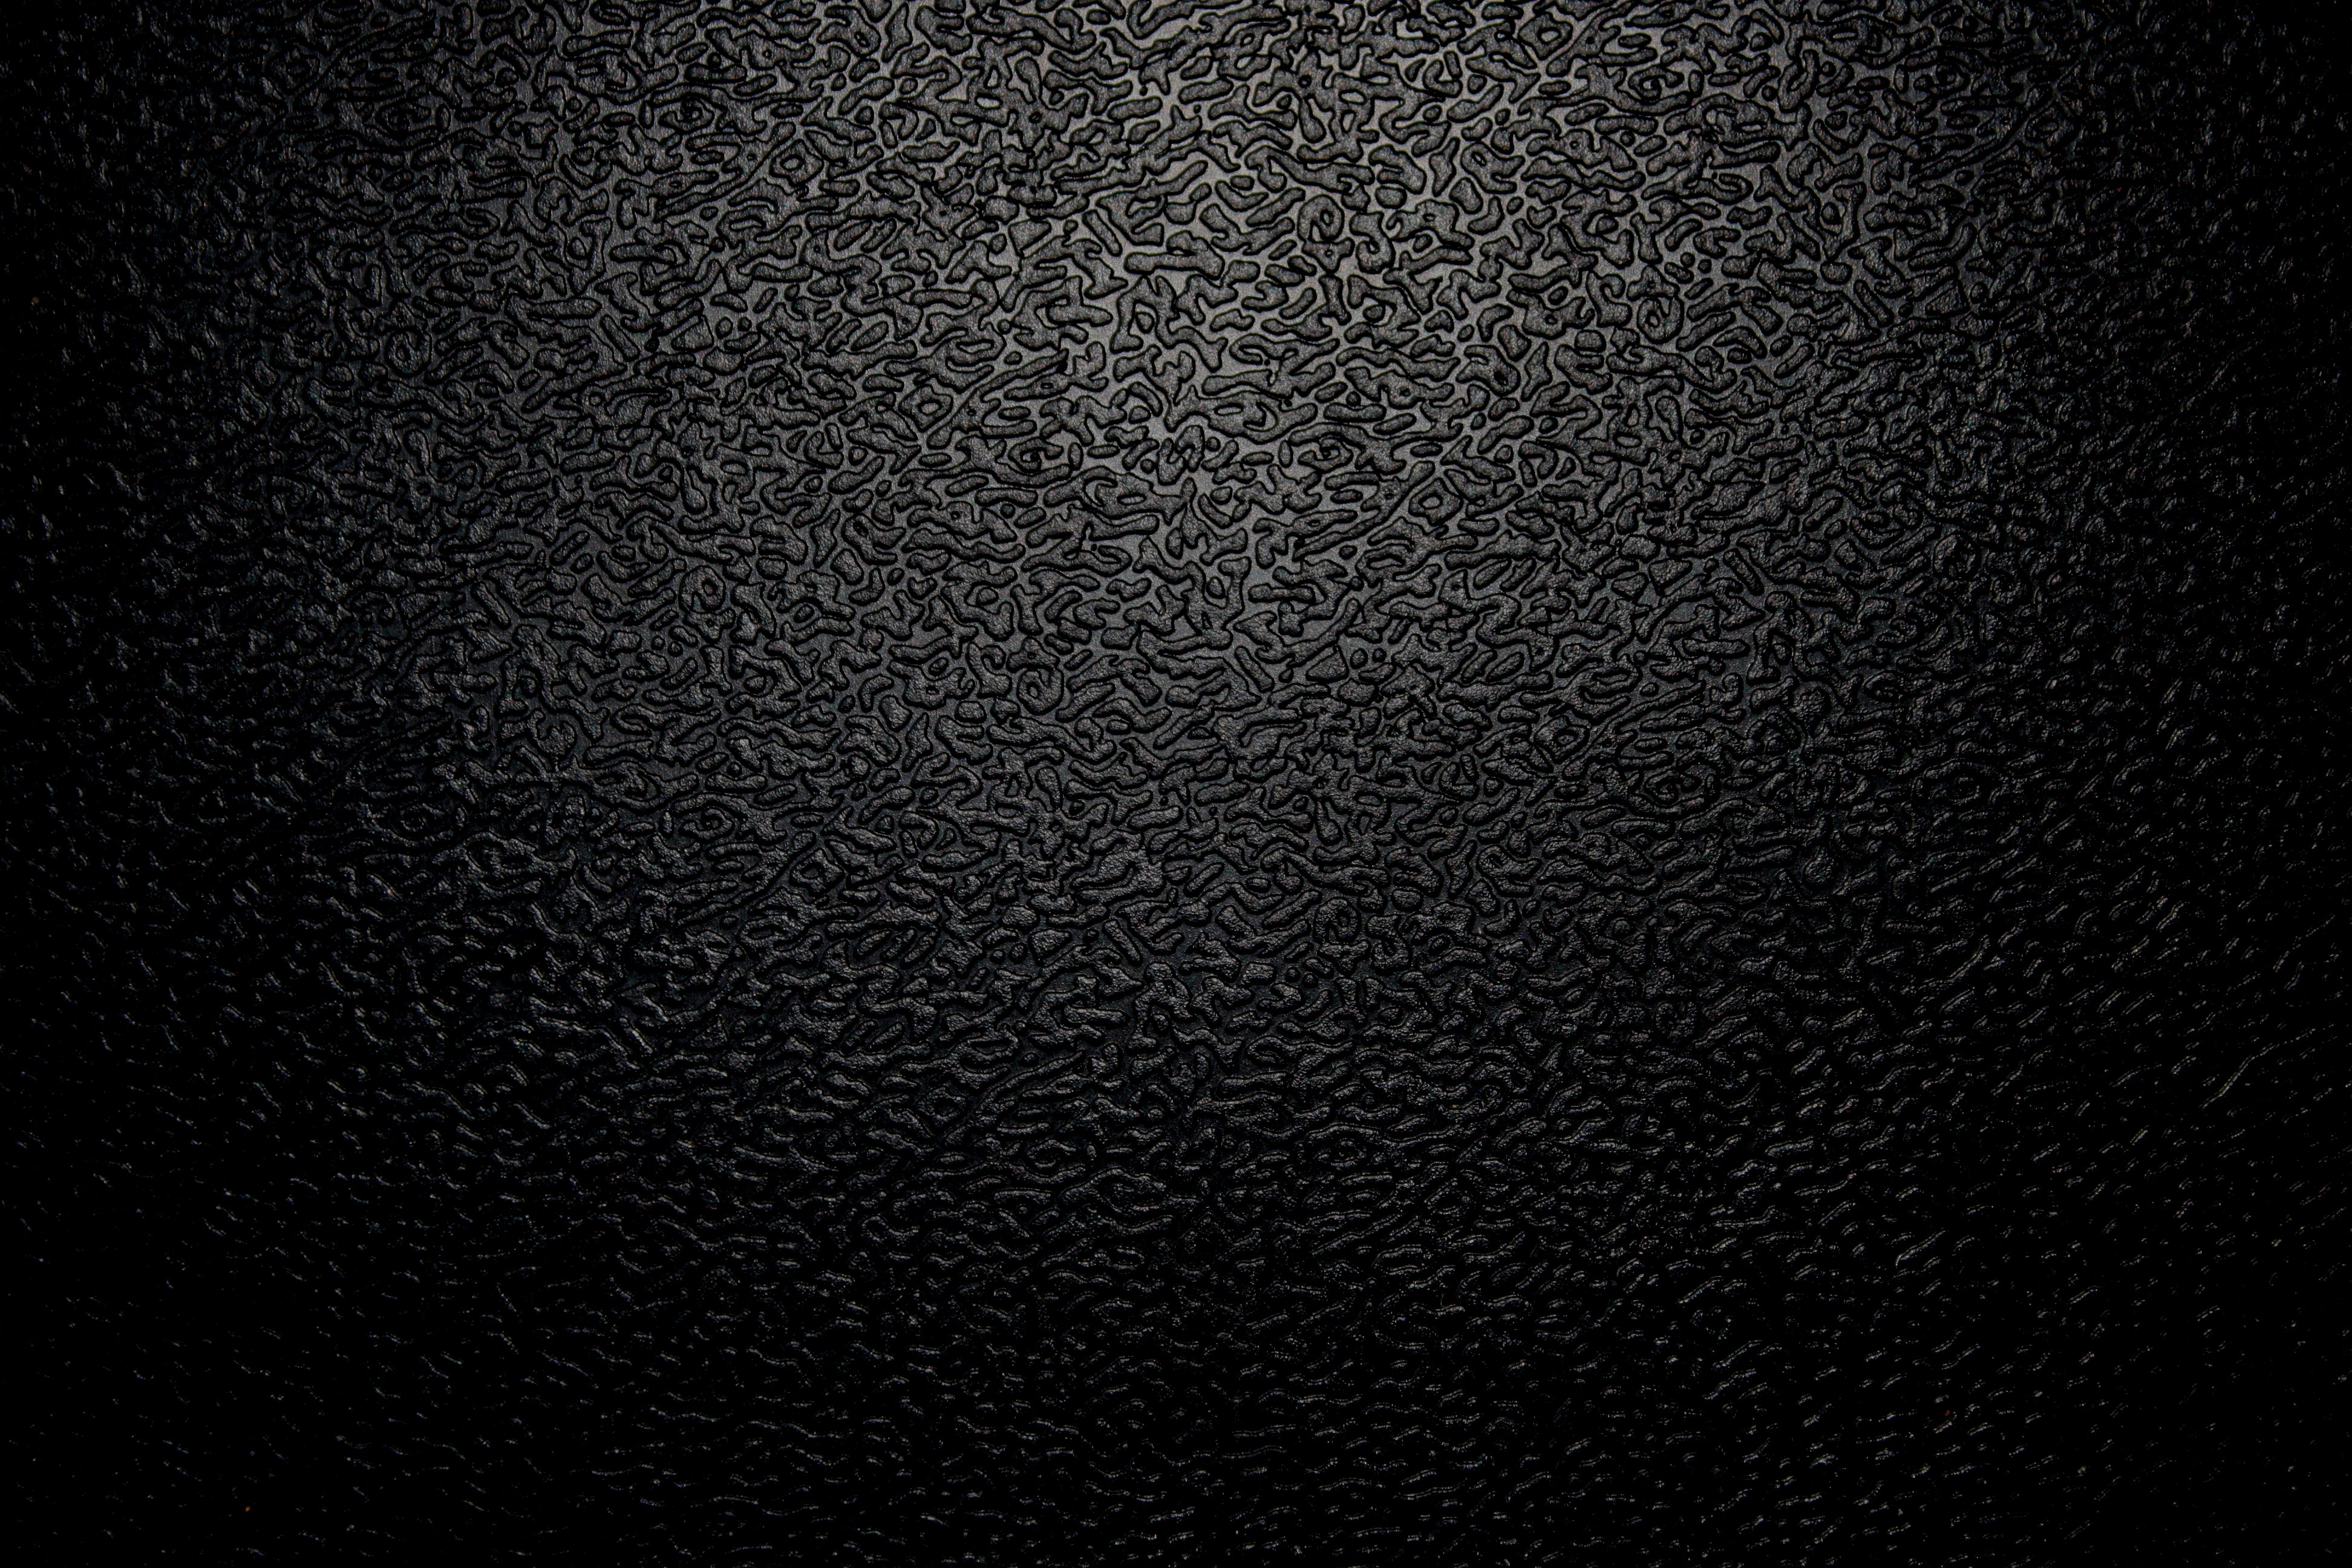 Textured Black Plastic Close 3888x2592